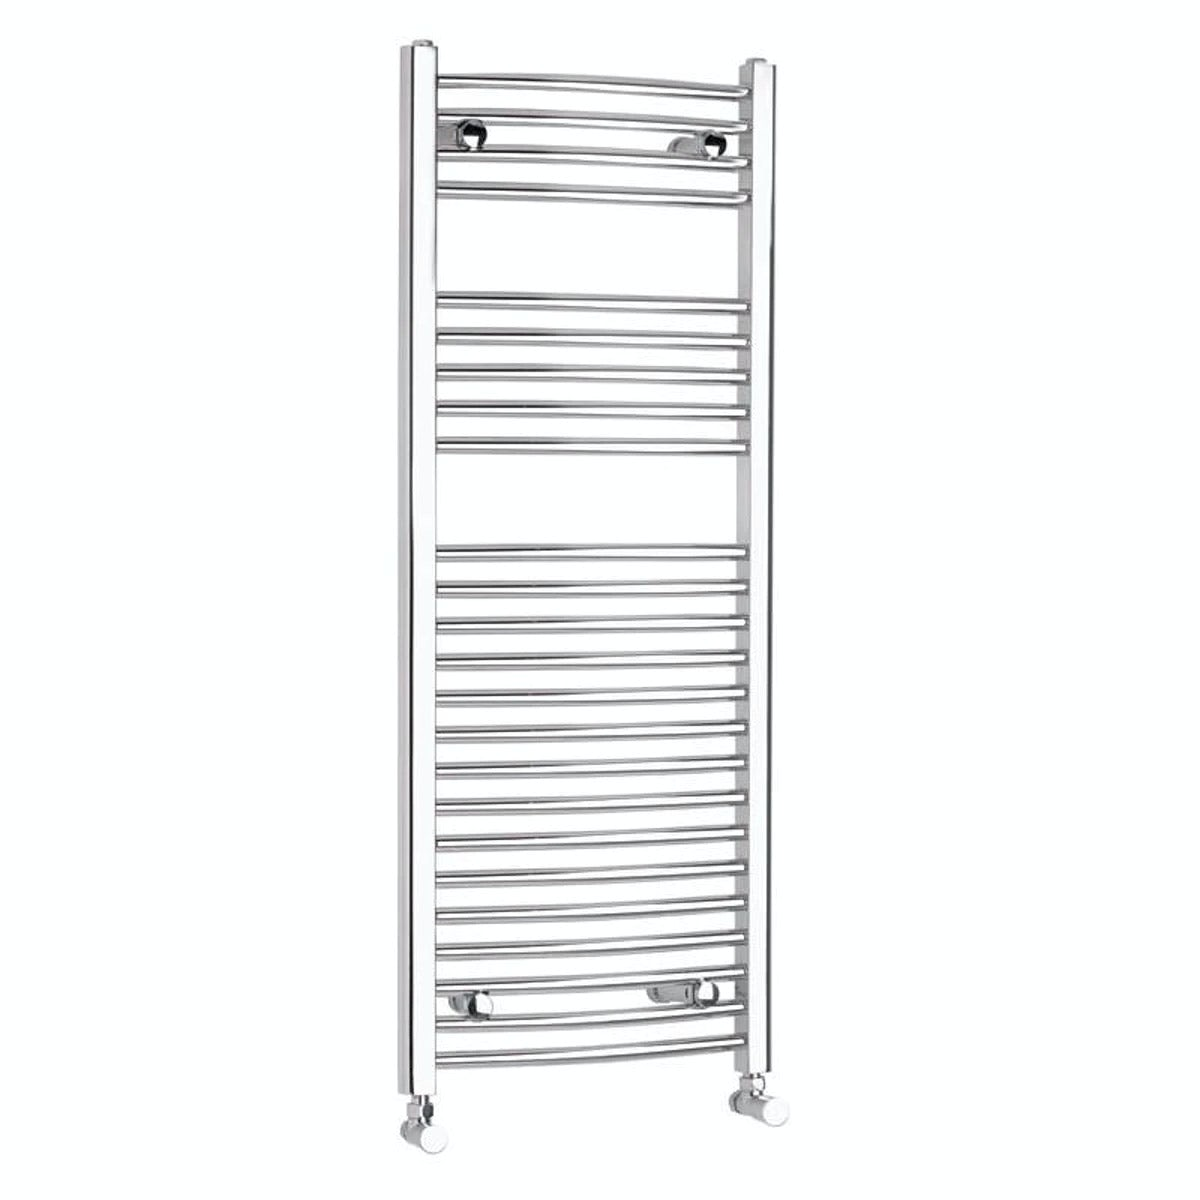 Orchard Elsdon heated towel rail 1150 x 450